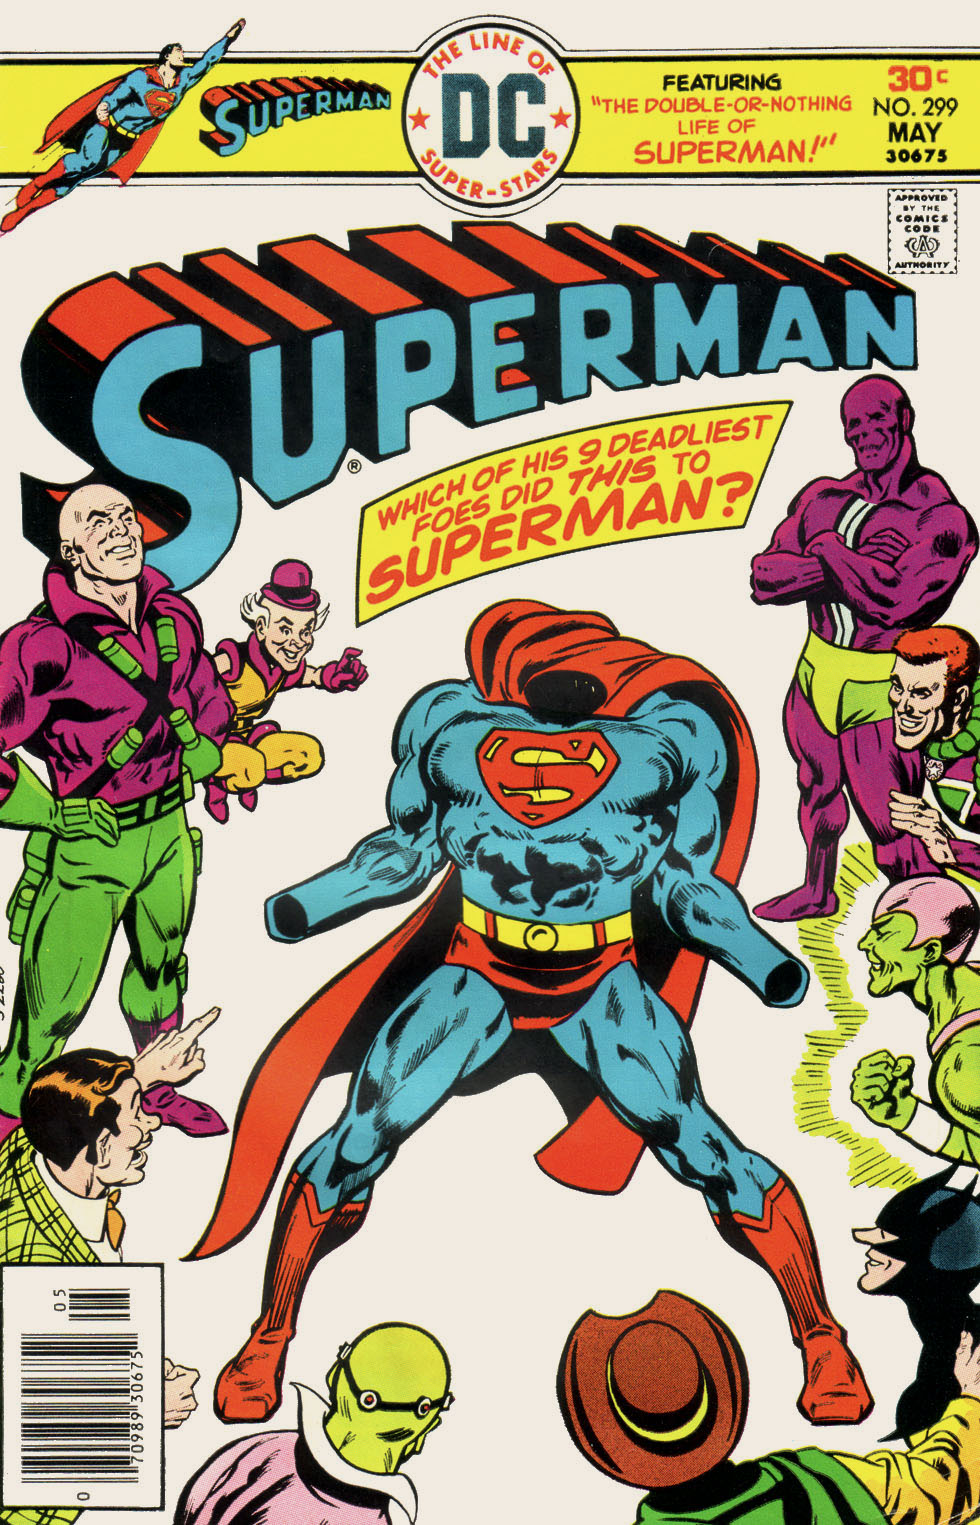 Lex Luthor, Mxyzptlk, Parasite, Amalak, Brainiac, and other villains, most in shades of purple and green, surrounding empty but filled-out, muscular suit of Superman